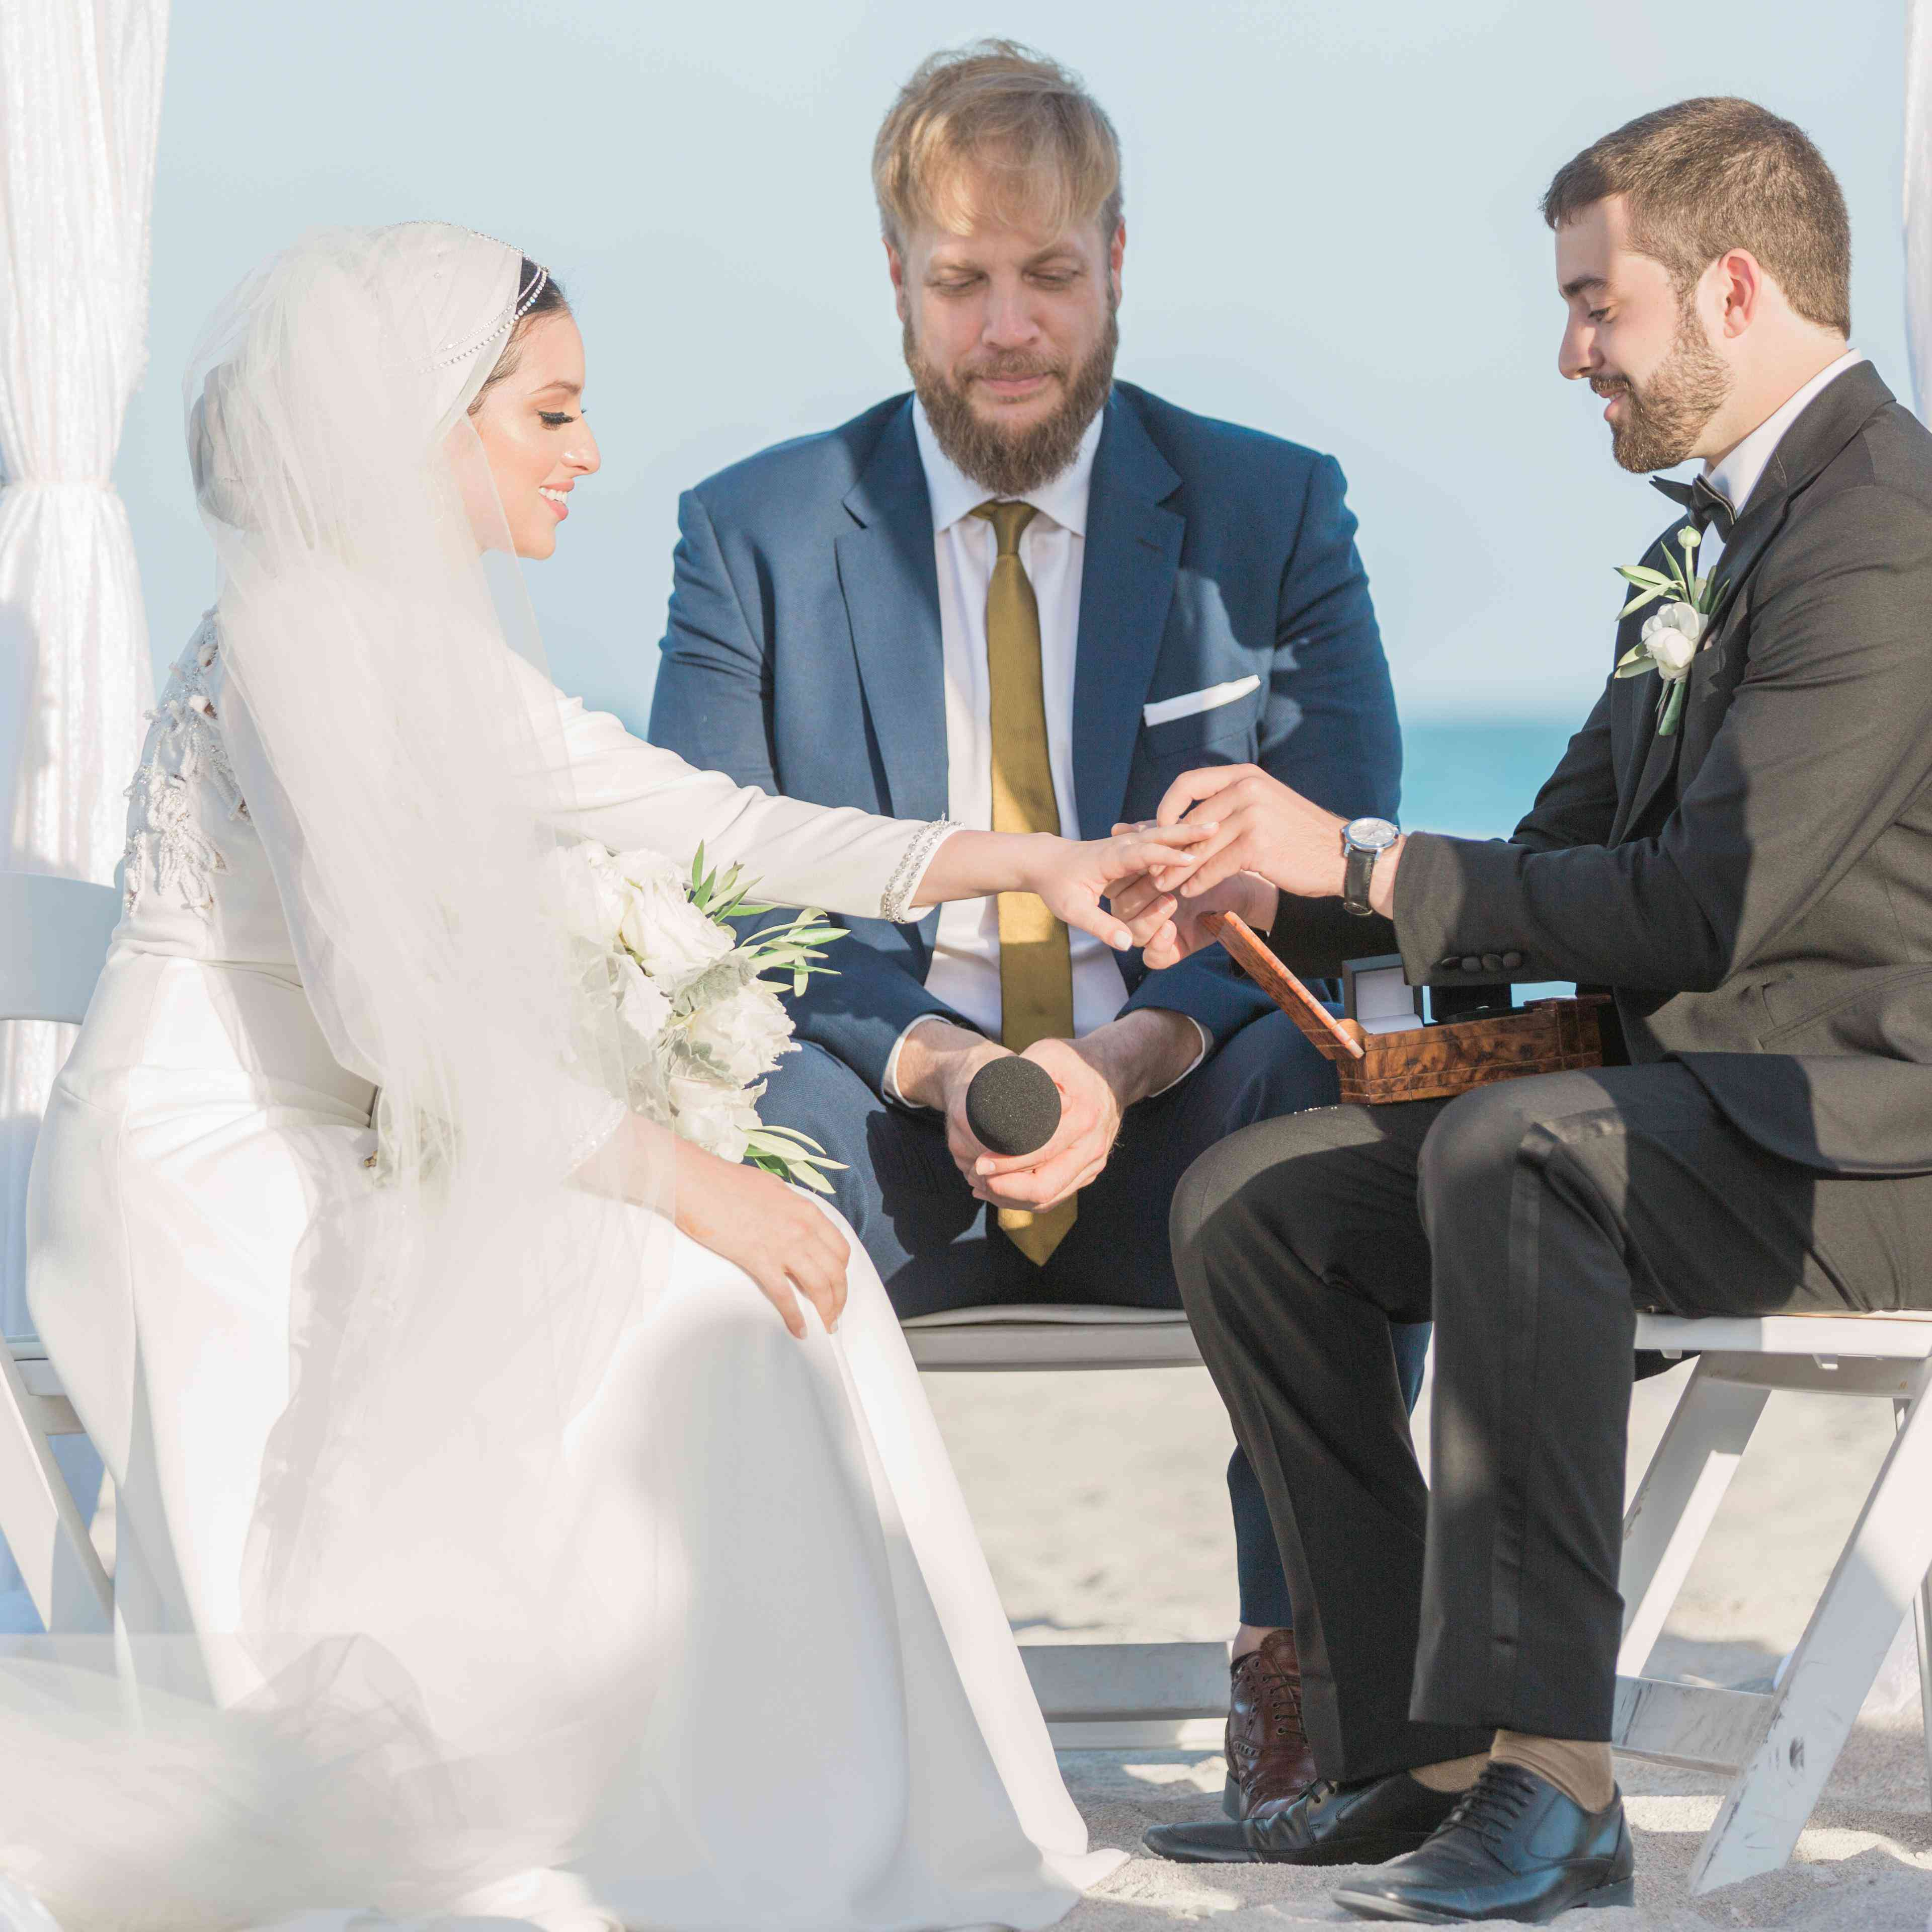 No Ceremony Just Reception: Is It Rude To Skip The Ceremony And Only Attend A Wedding